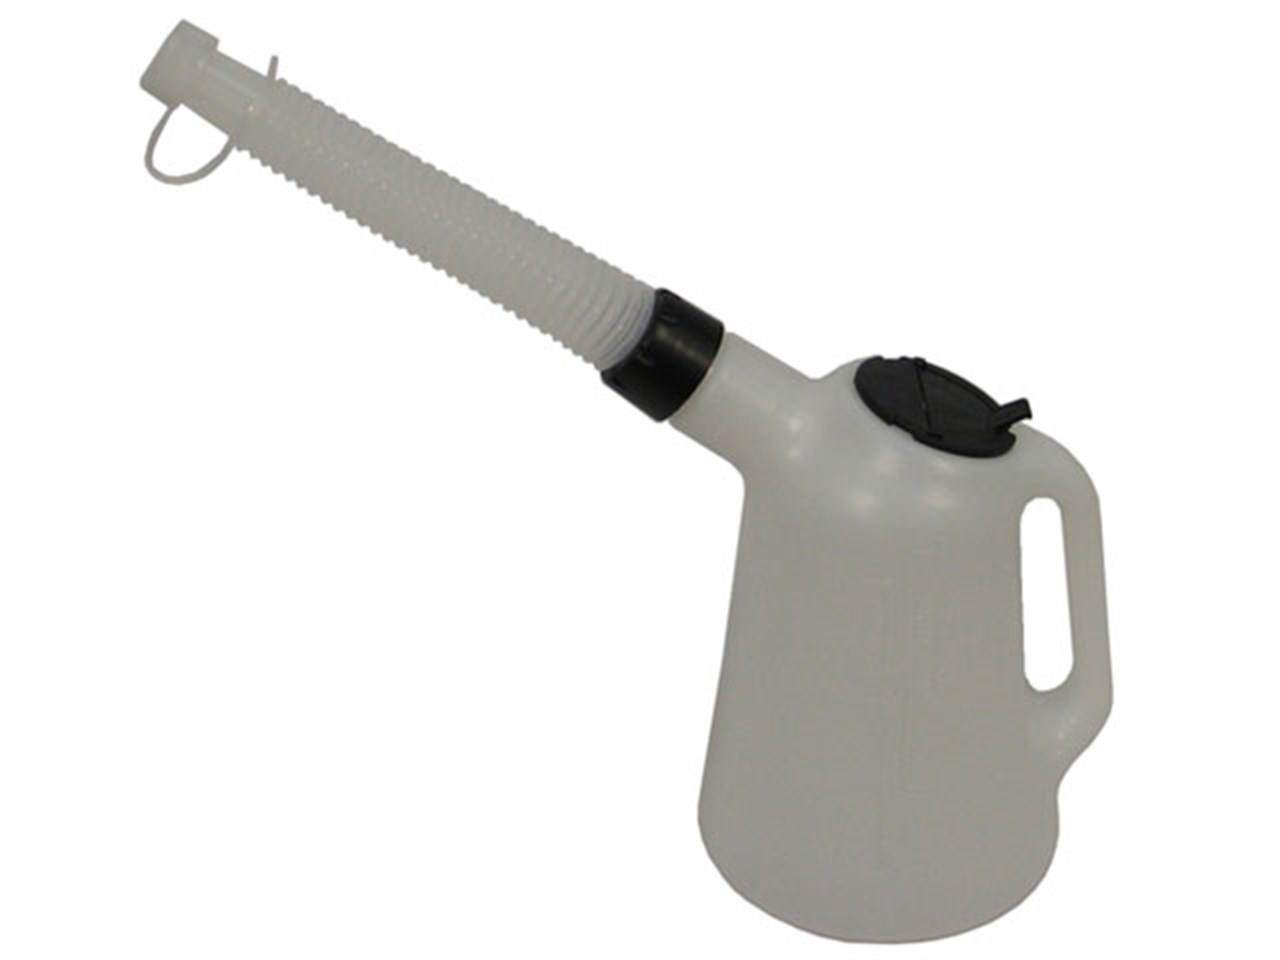 Oil For Measuring Instruments : Lumatic lummf sa poly oil measure jug with spout litre